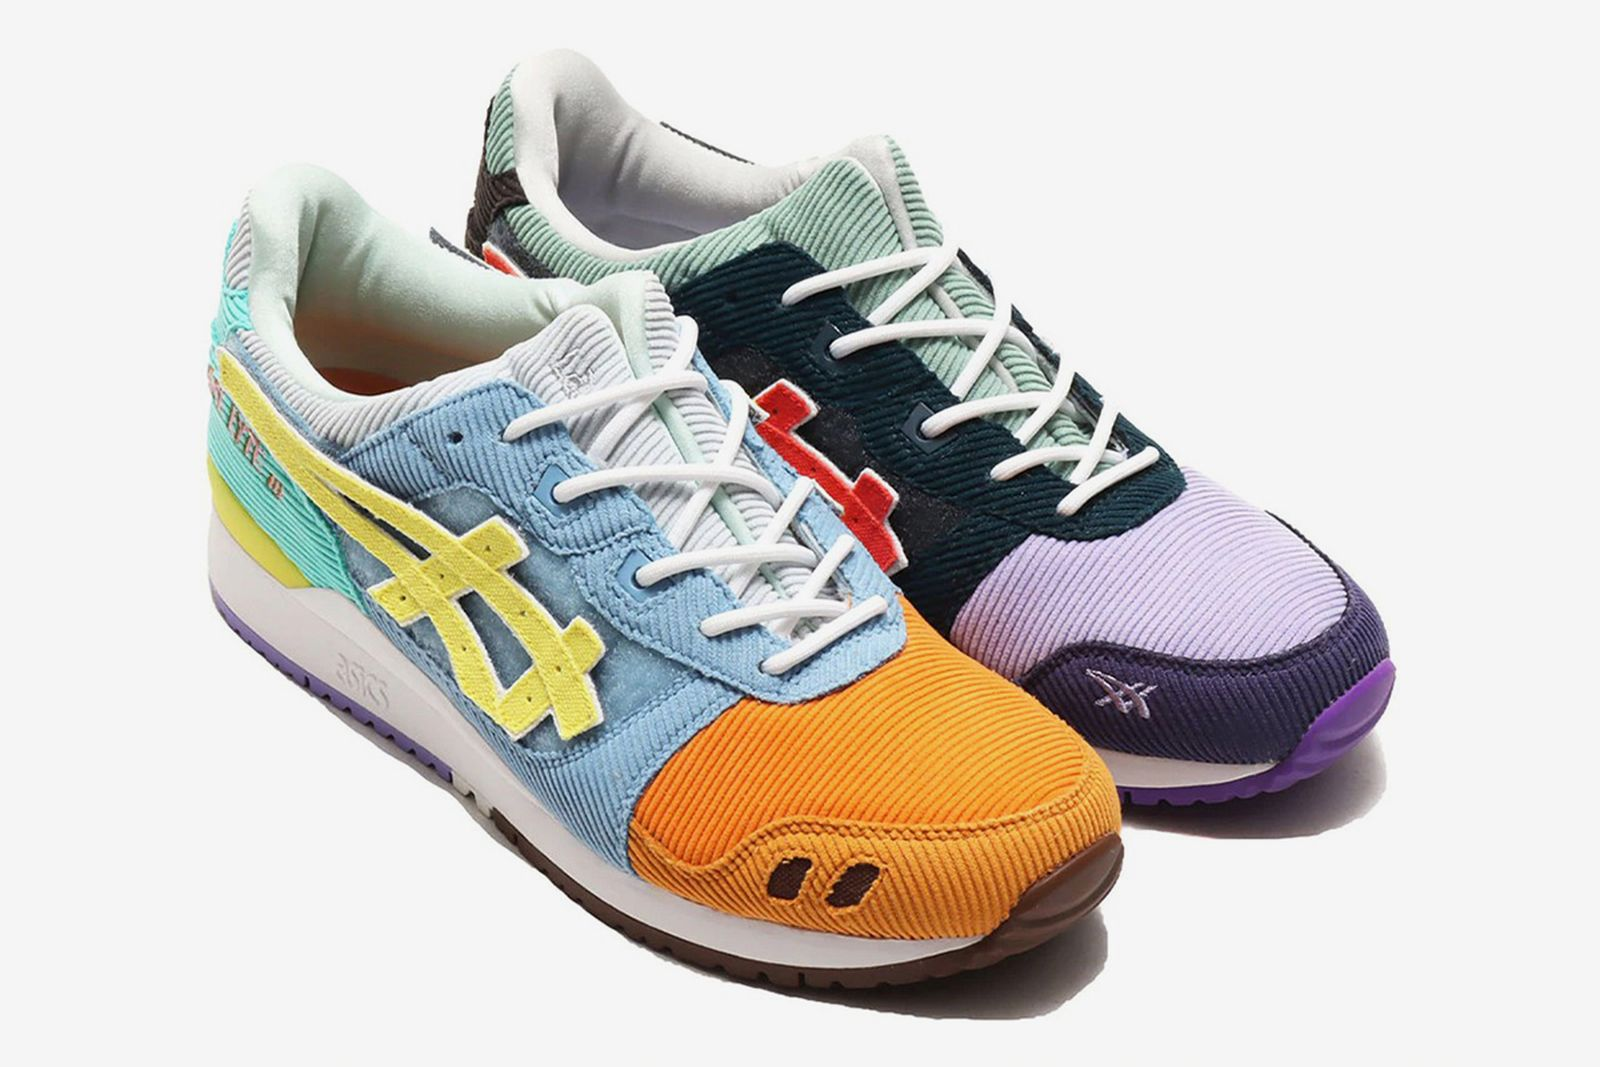 sean-wotherspoon-asics-gel-lyte-3-release-date-price-10